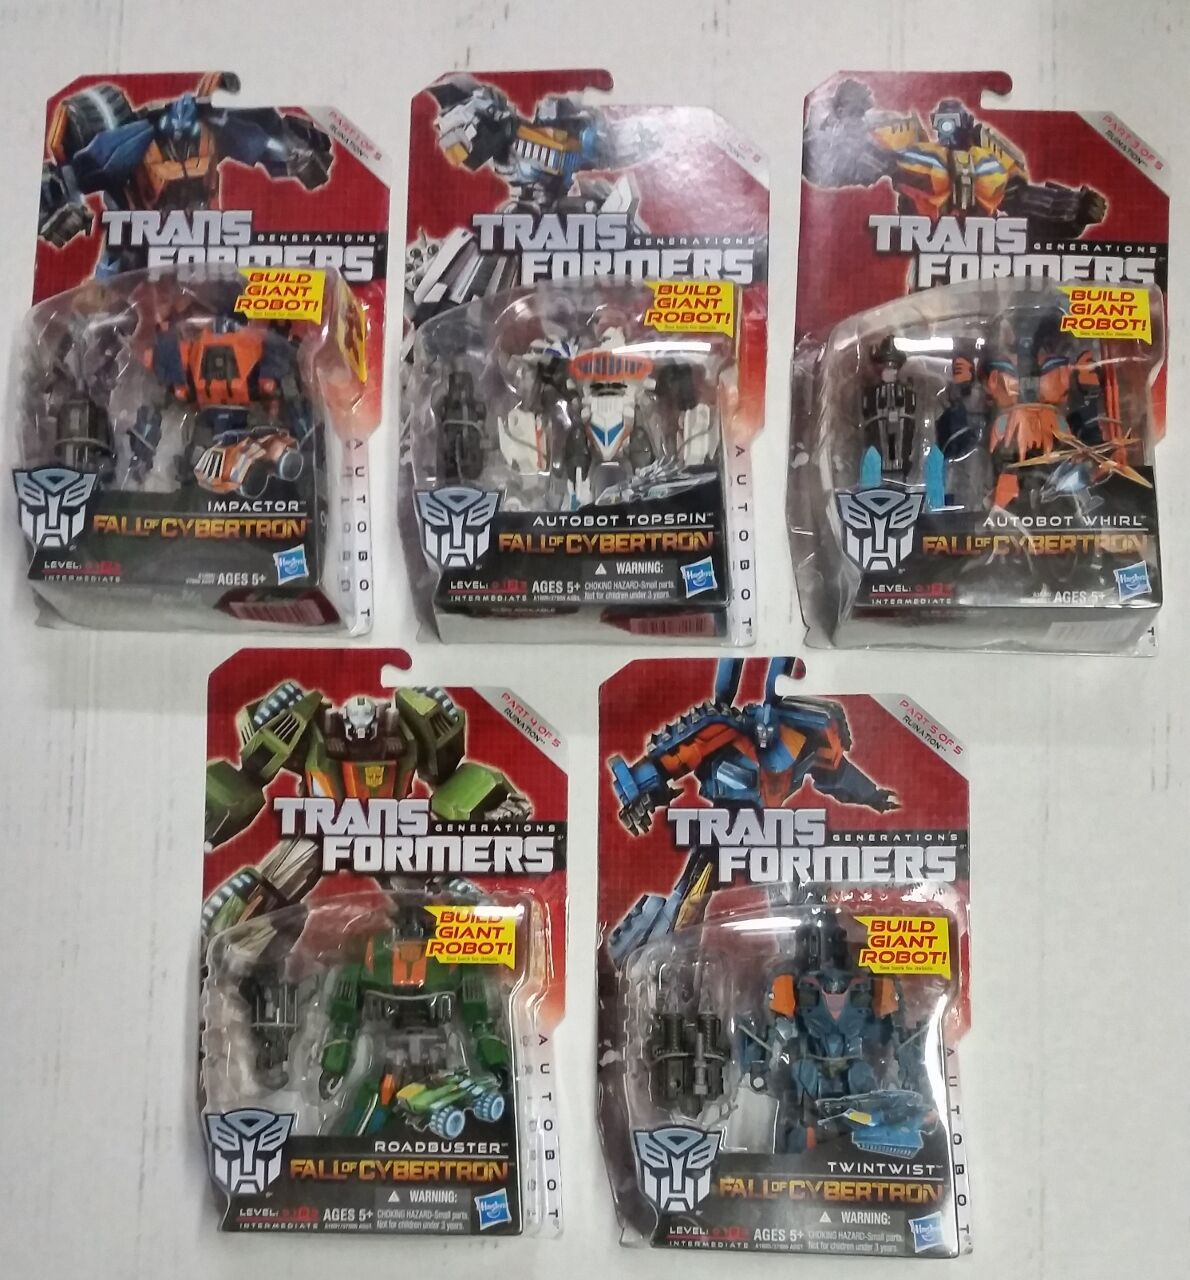 TRANSFORMERS Generations Build Giant Robot  RUINATION Fall of Cybertron NIP